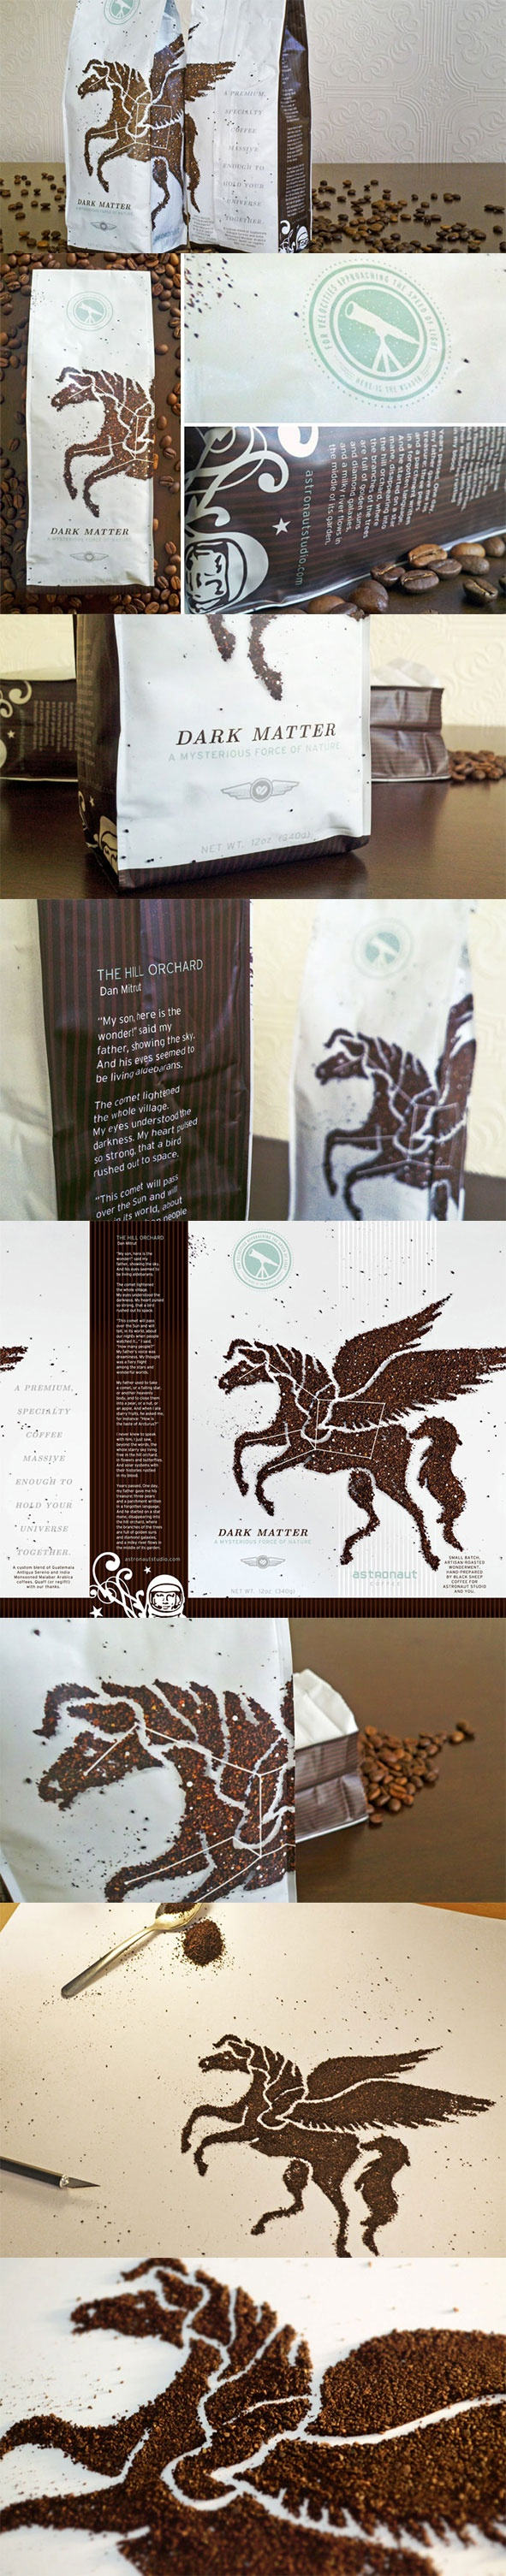 Dark Matter Coffee  --The Dieline--